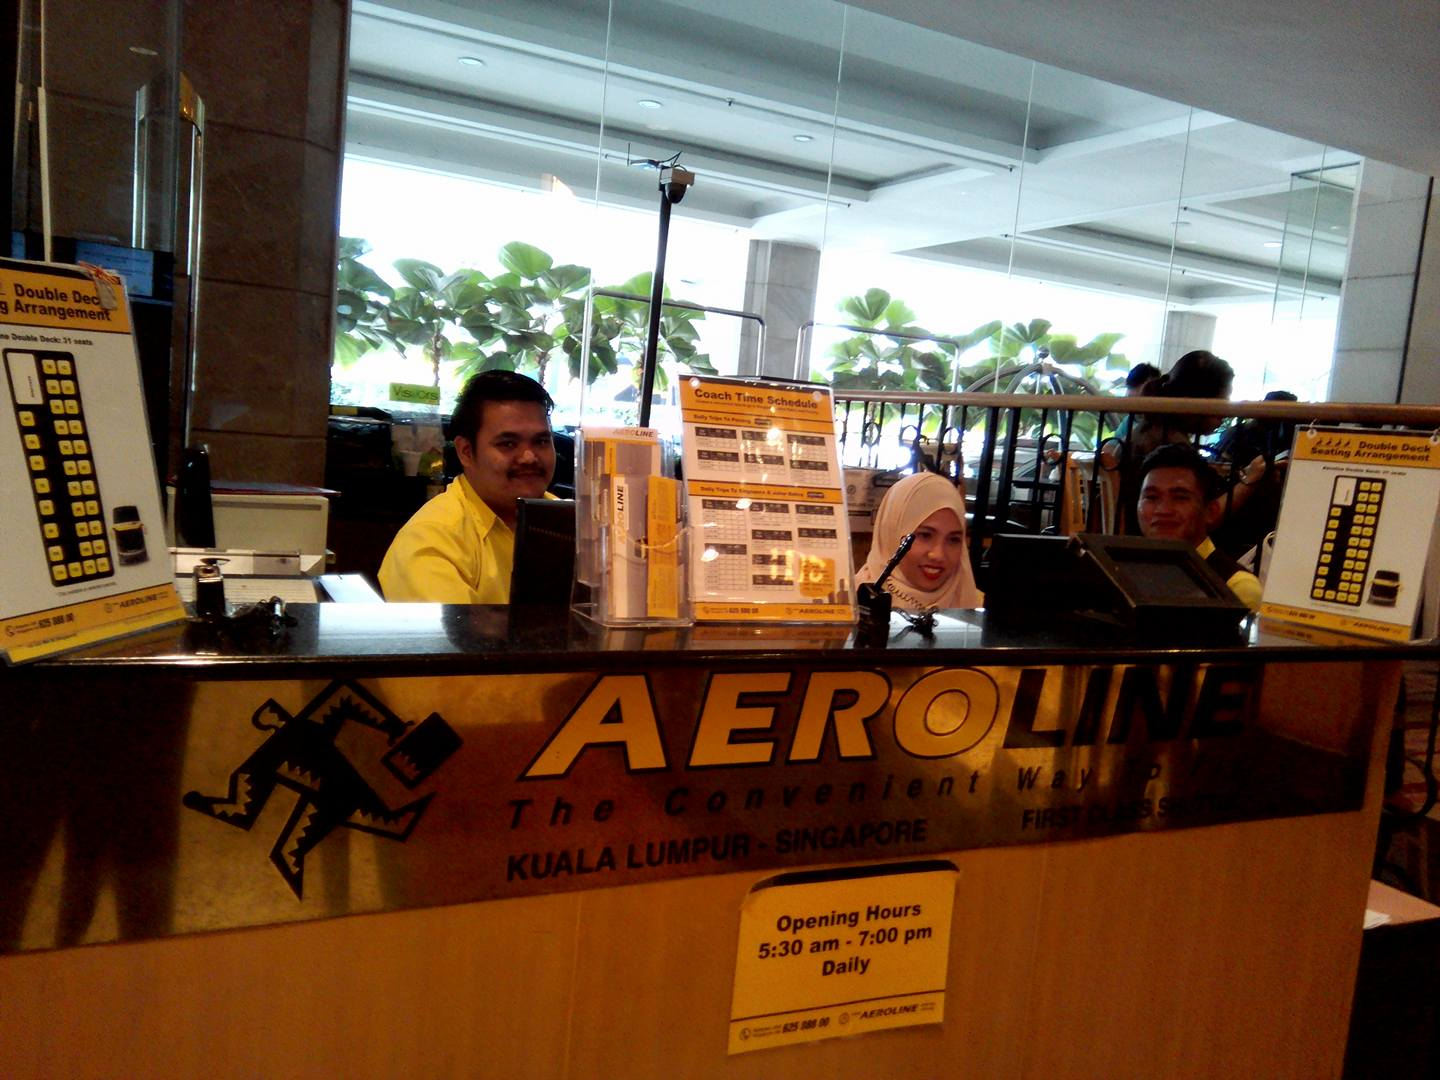 Aeroline Bus station at Corus Hotel